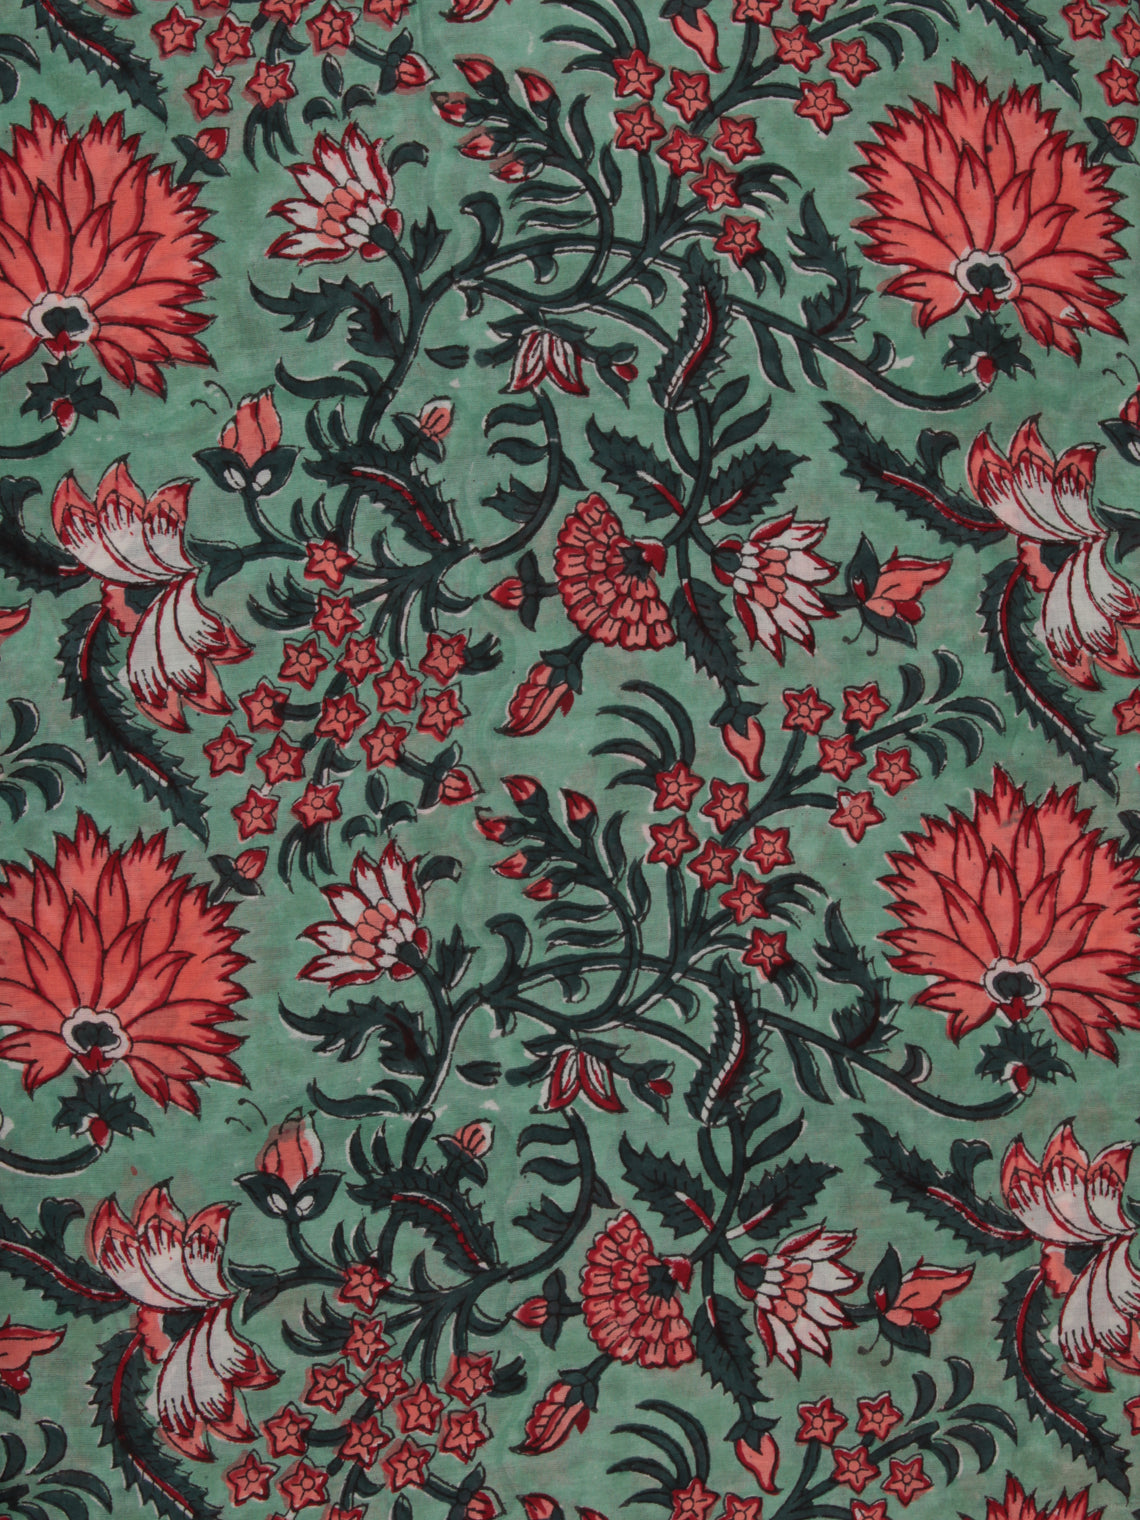 Green Coral White Hand Block Printed Cotton Fabric Per Meter - F001F2362